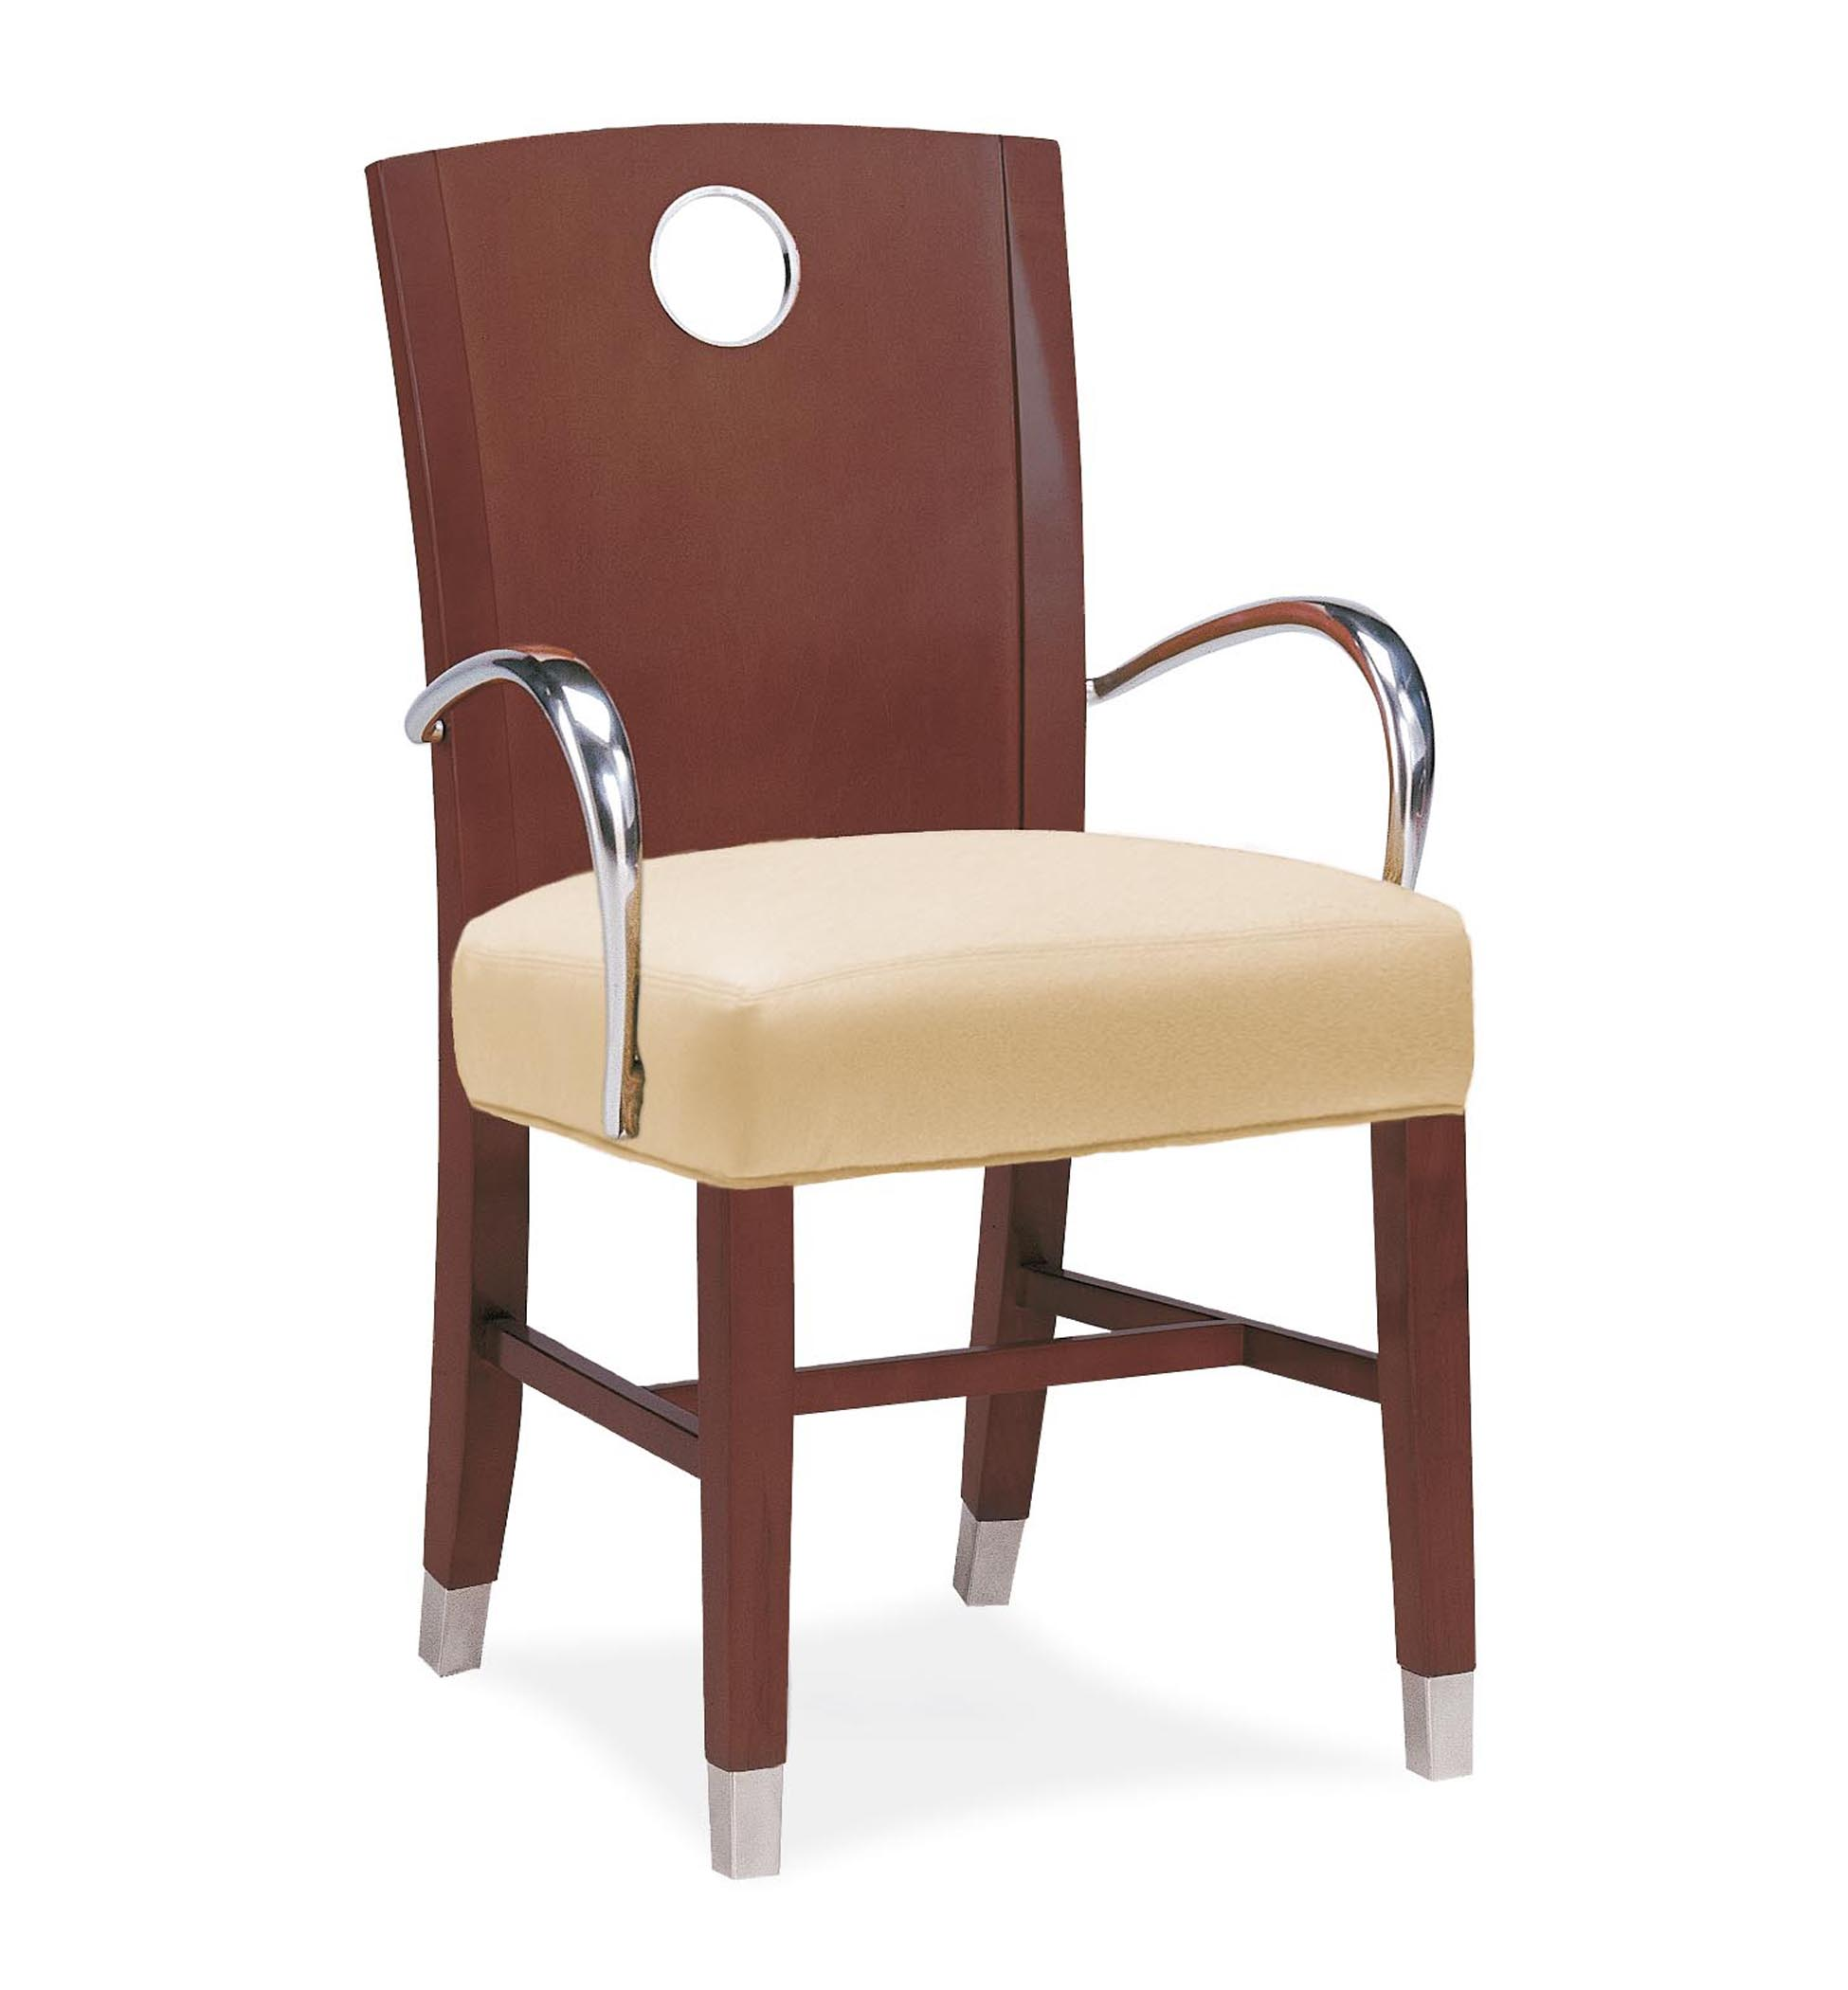 wooden chairs with arms india chair canopy target 2355 wood arm